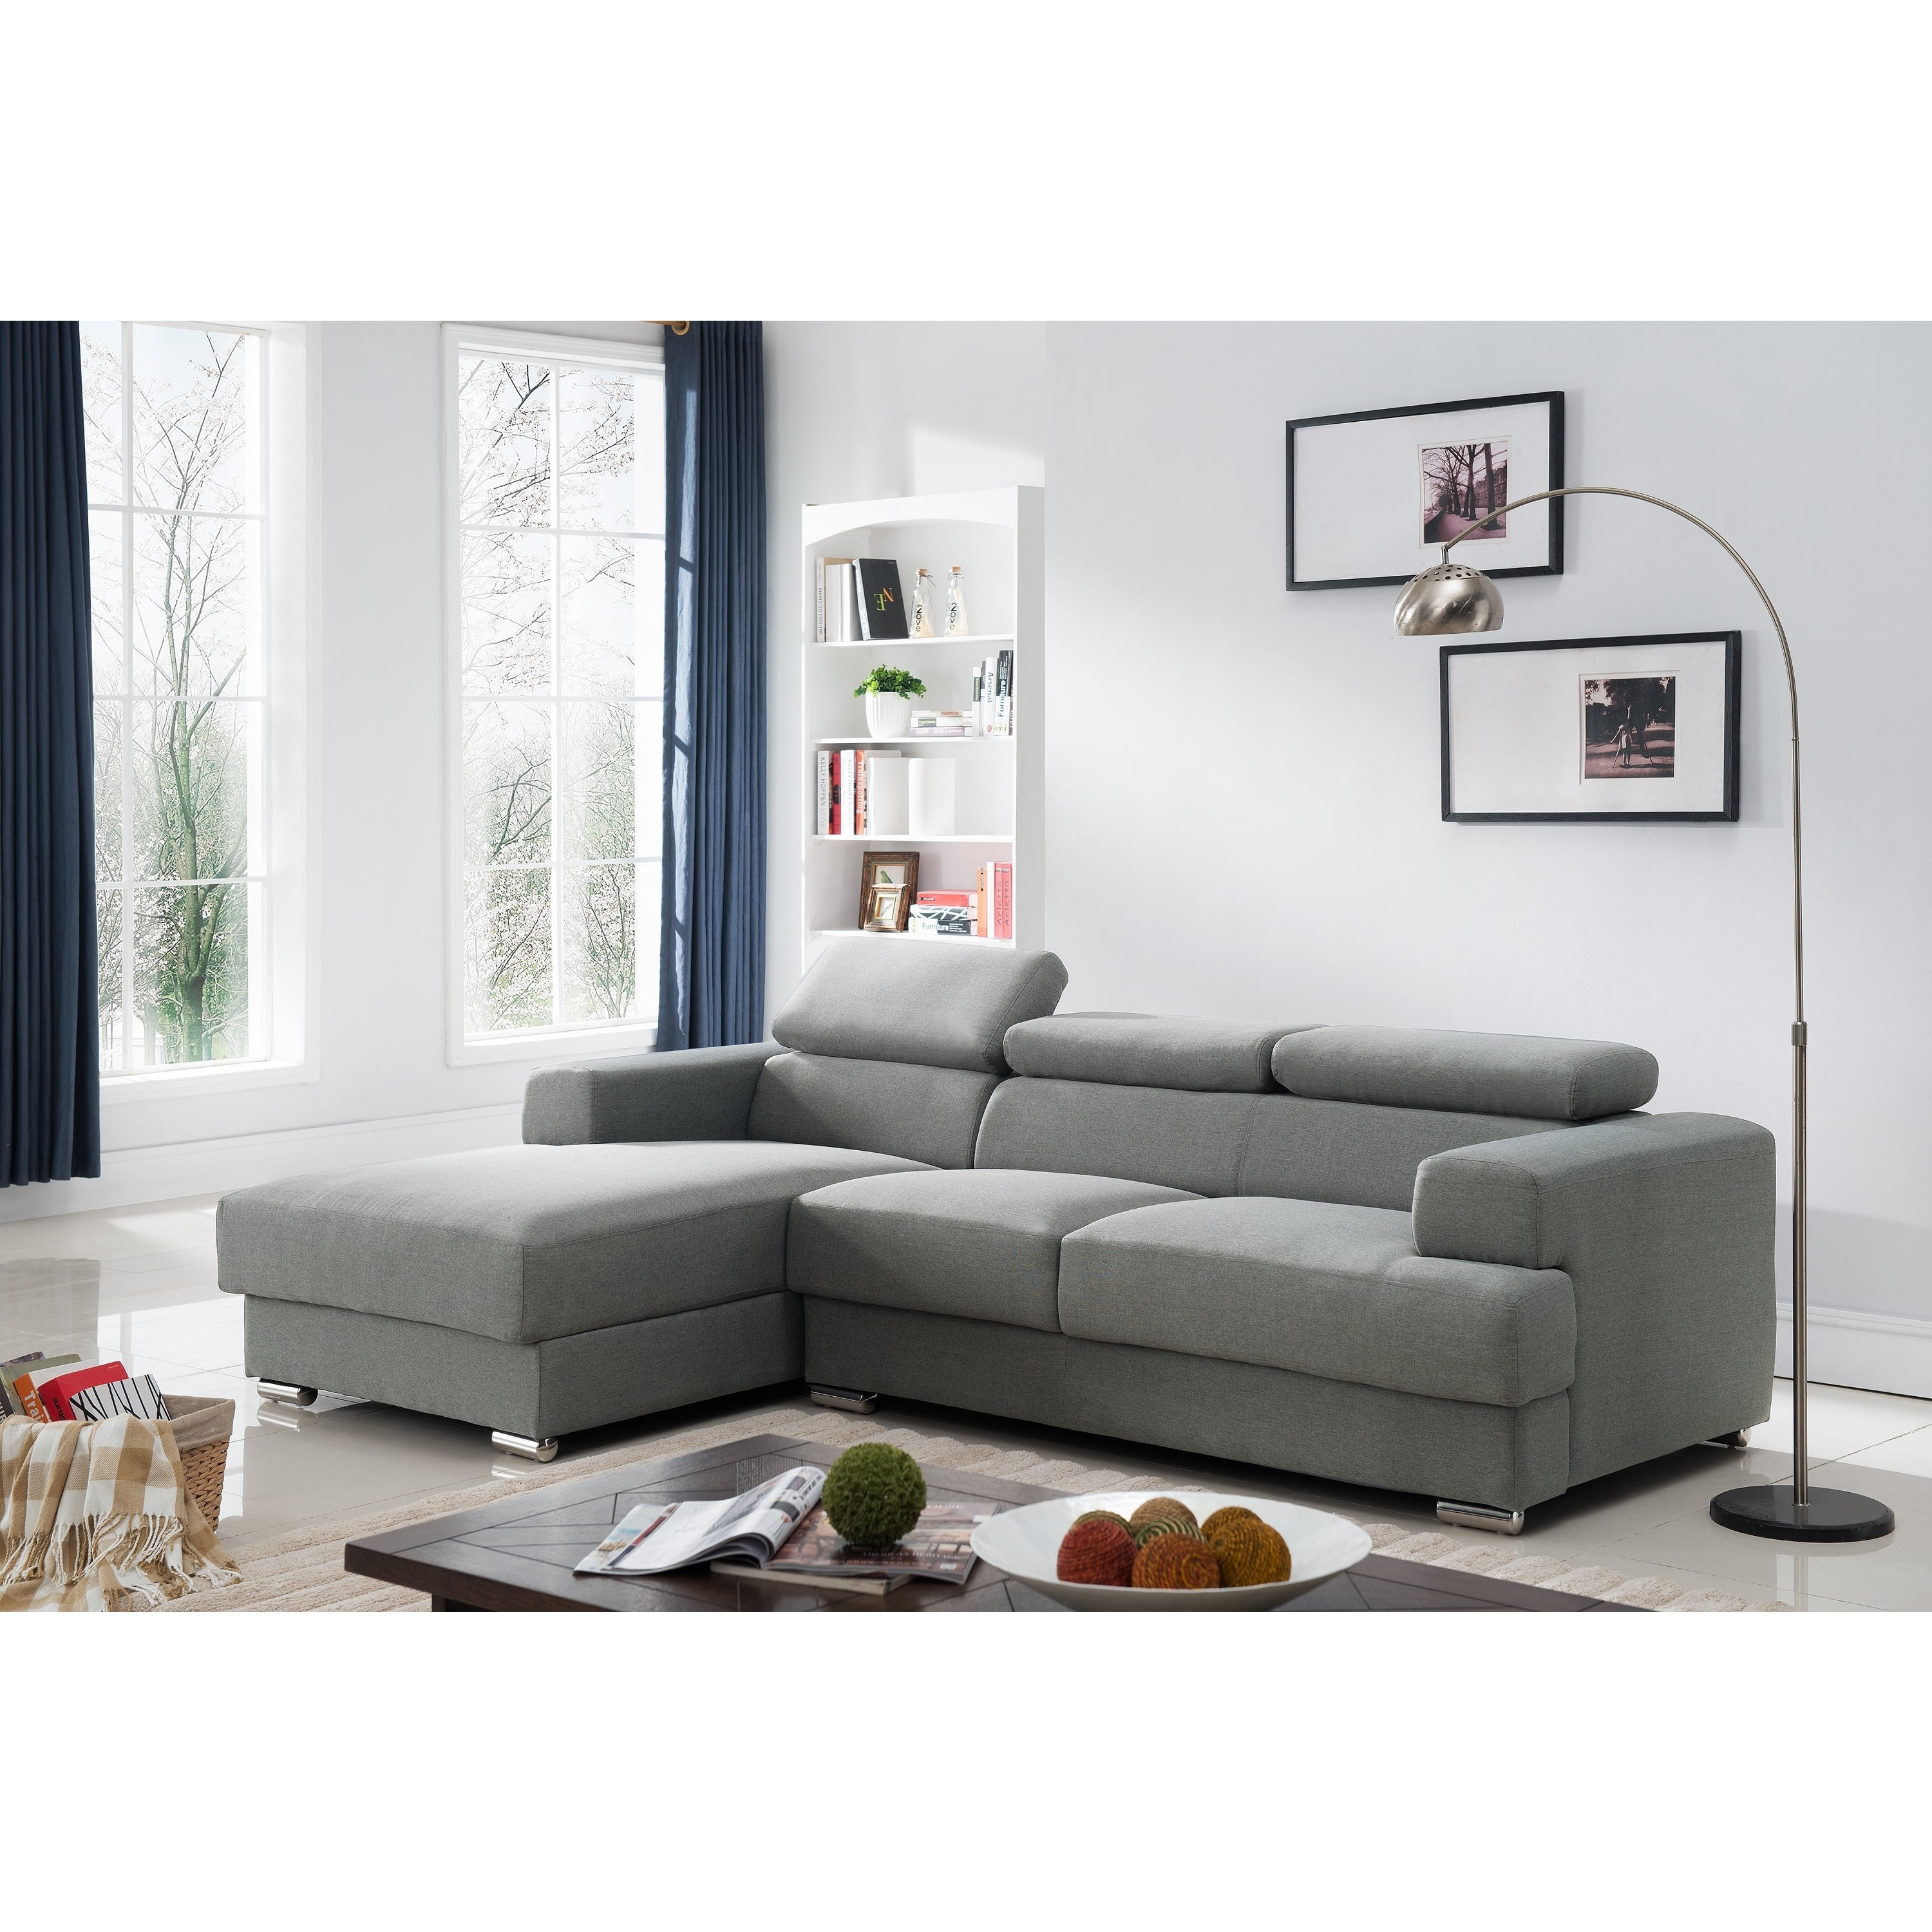 Gabriel Contemporary Fabric Upholstered 2-Pc Left Facing Sectional Sofa, Grey